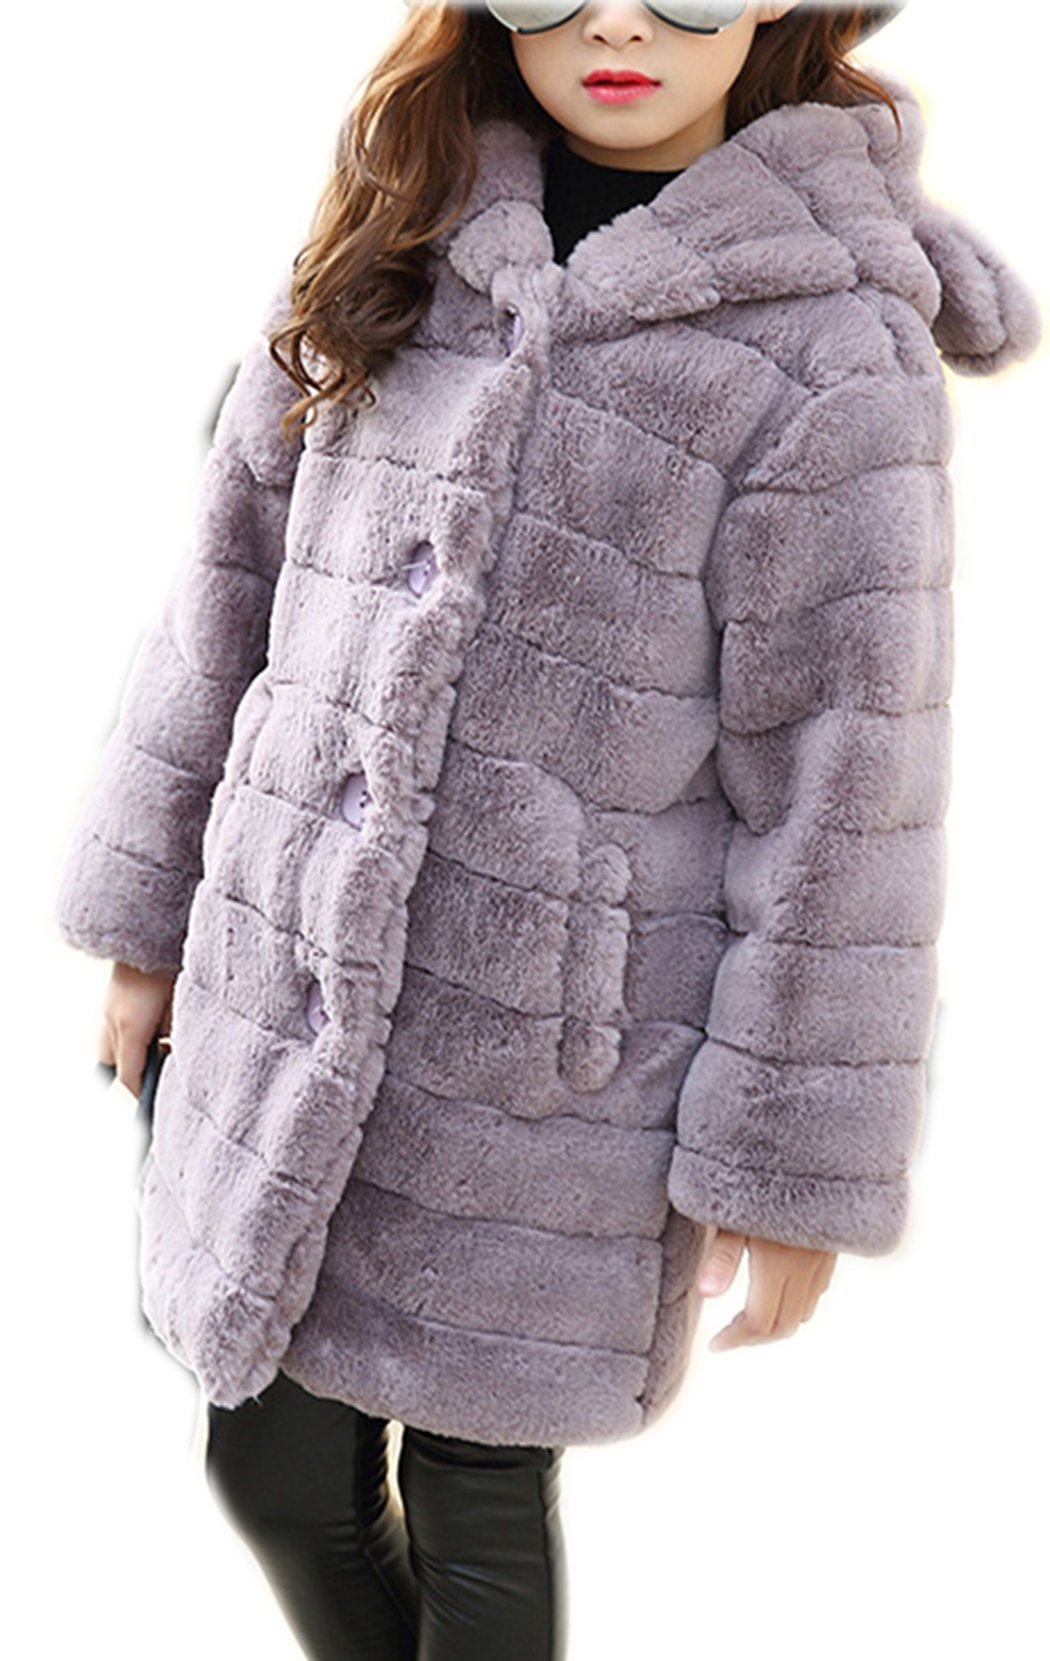 Girl's Long Warm Faux Fur Coat Thicken Fake Fox Hooded Front Button Jacket 120 Grey